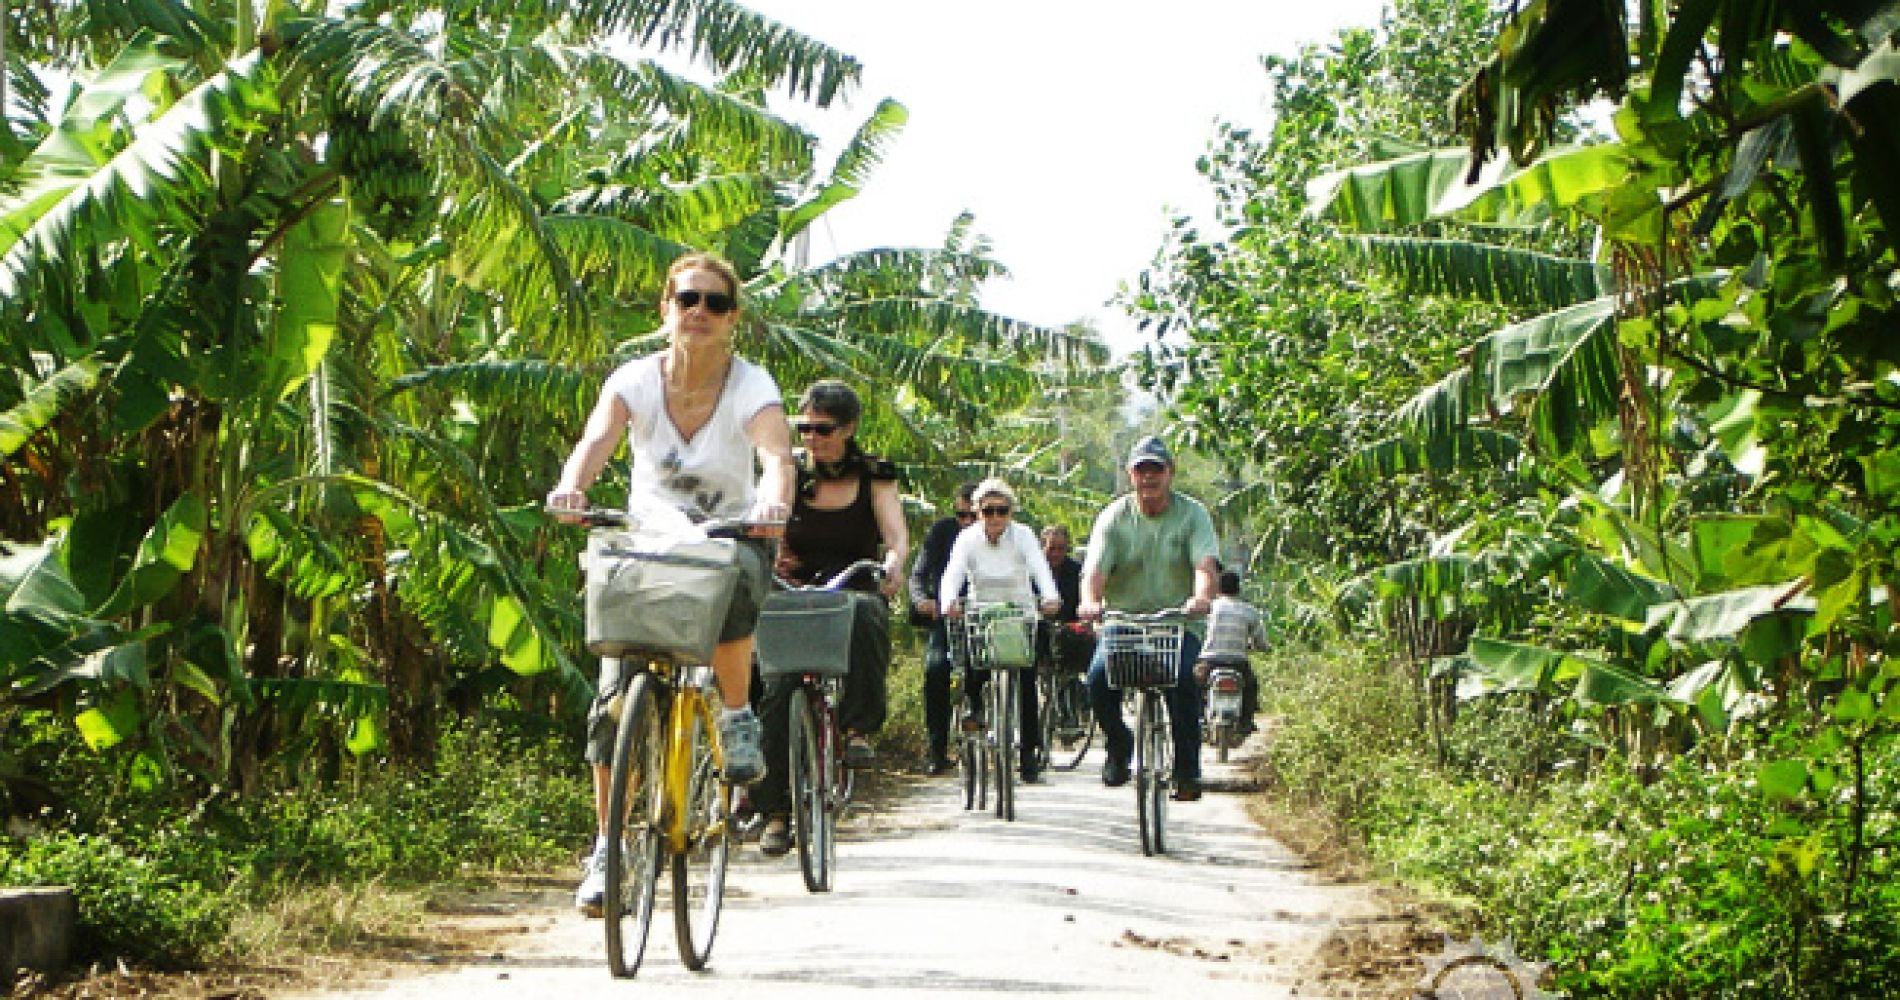 Multicultural Activity and Galaxy Grotto Tour from Hanoi for Two